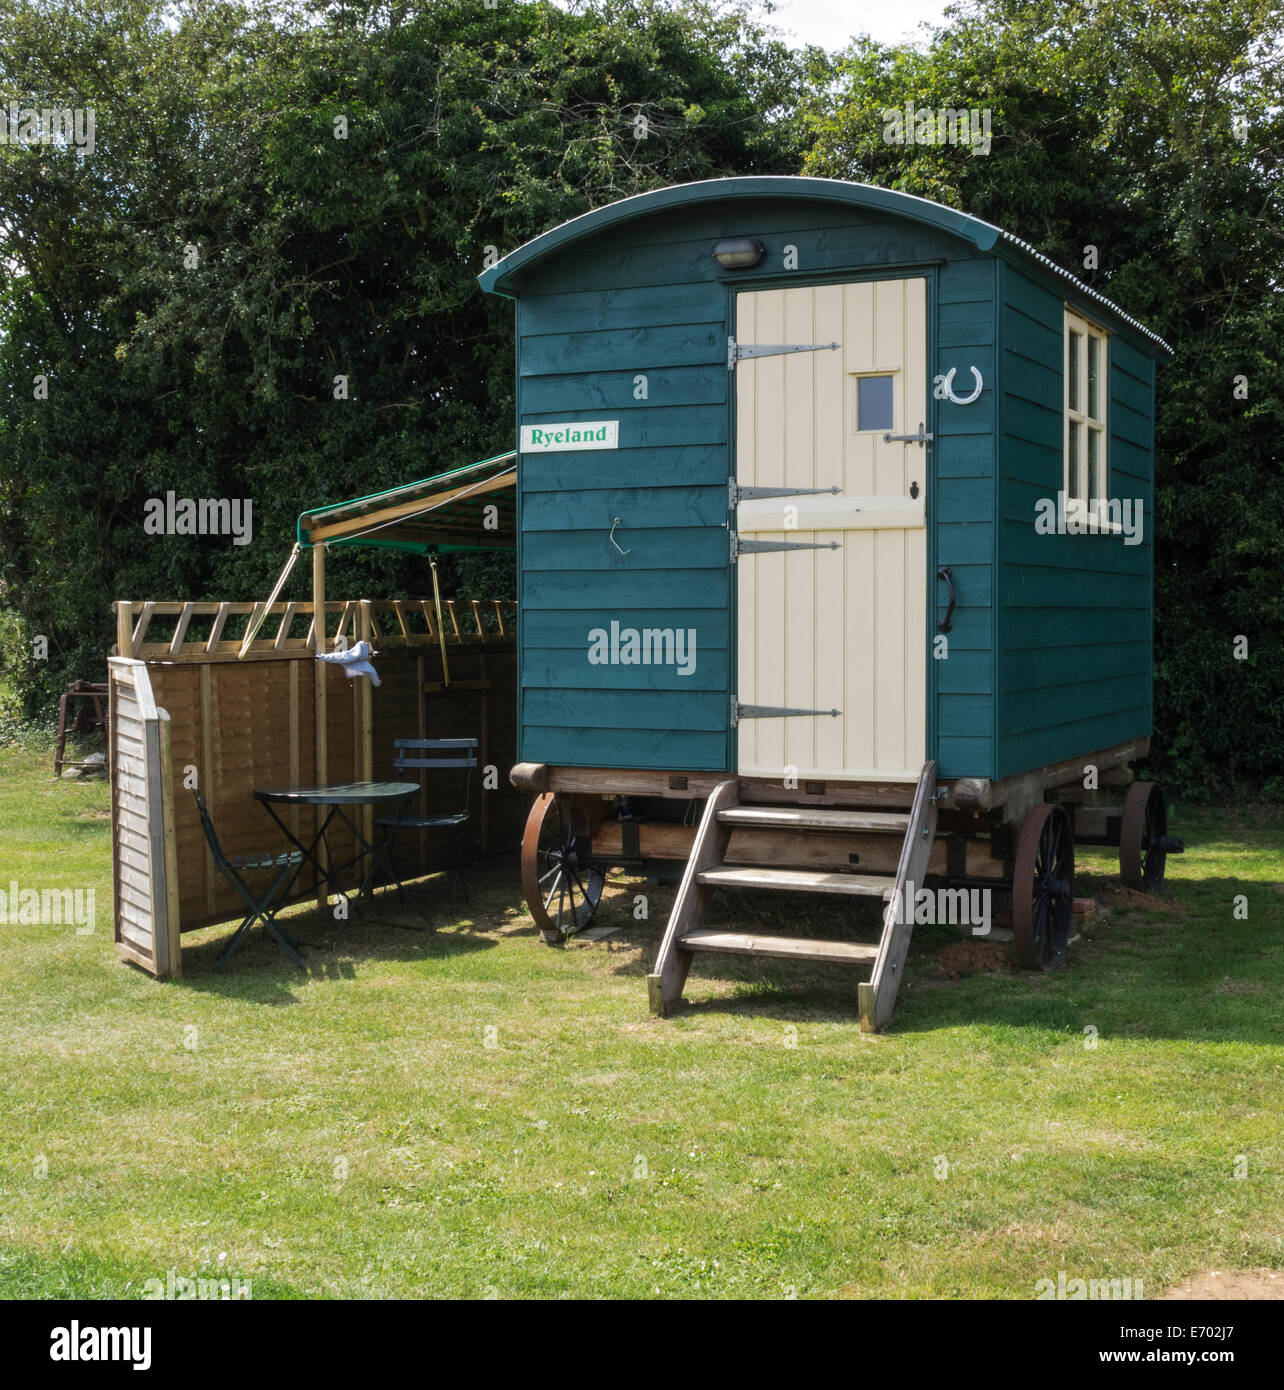 Shepherd's Hut, available for hire as camping accommodation at Birchem Windmill, Norfolk, UK - Stock Image